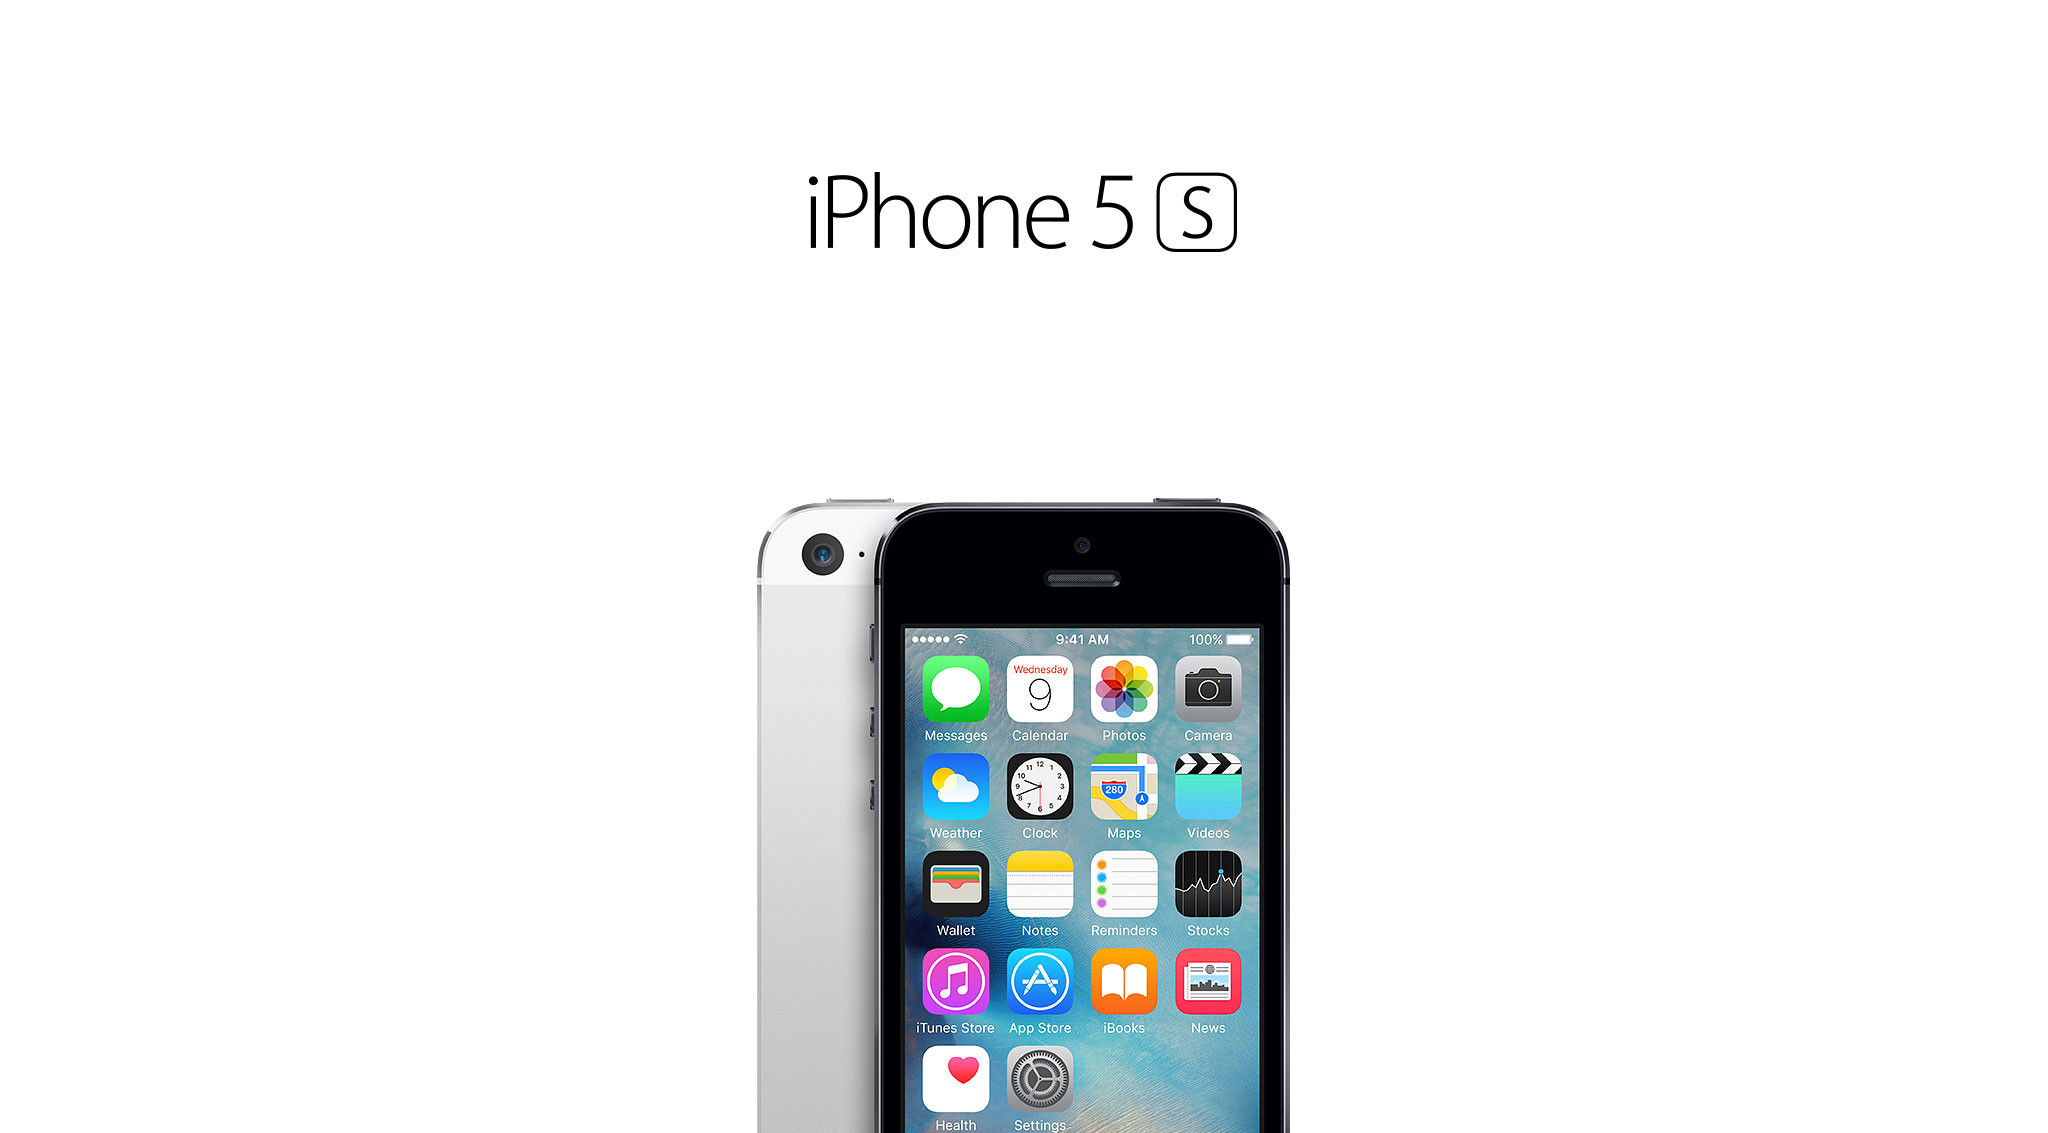 iPhone 5s: Buy Now